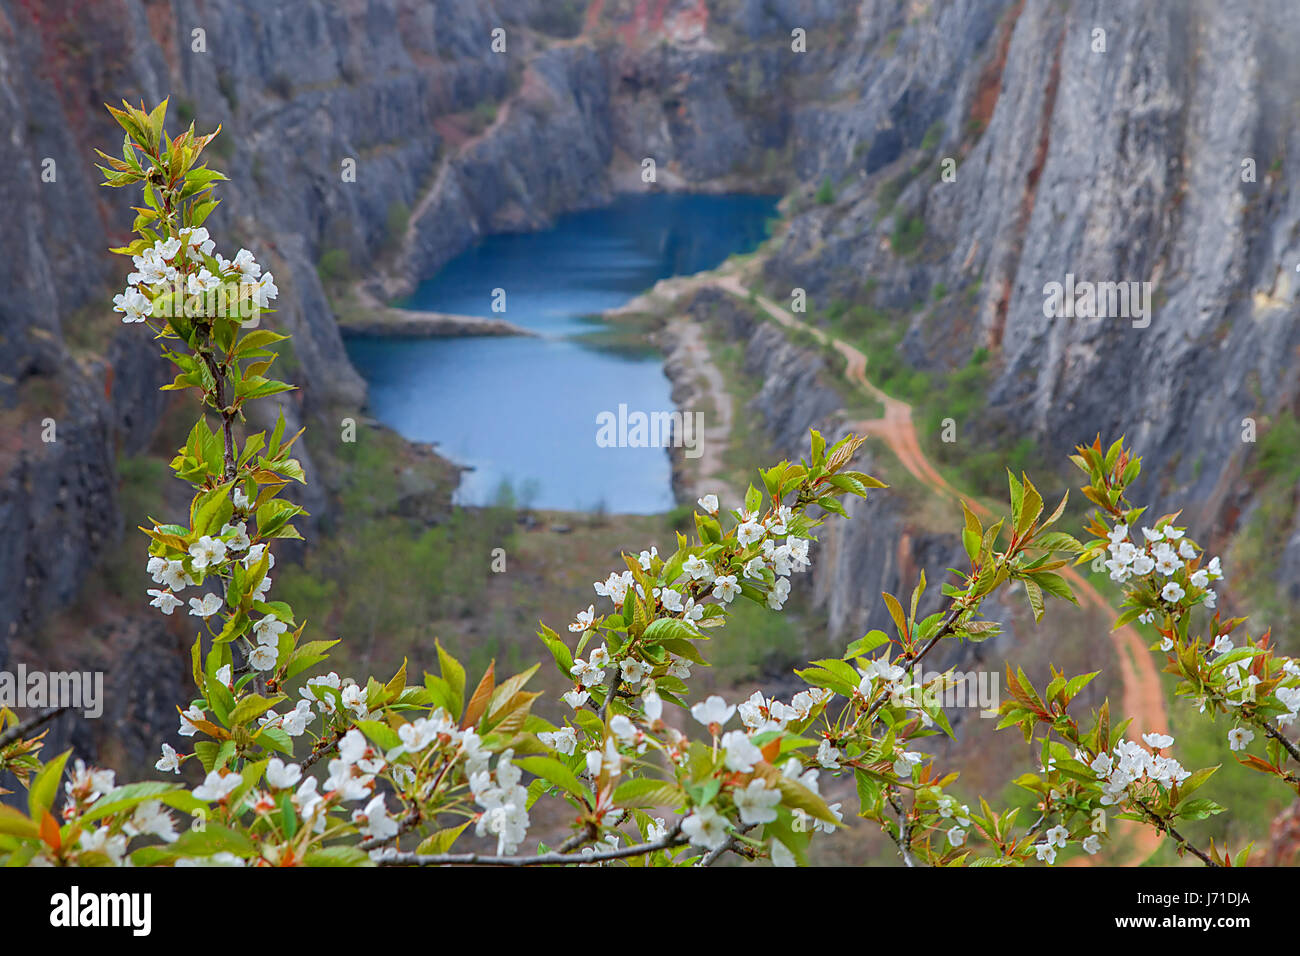 The Big America - Velka Amerika is dolomite quarry for cement production. Czech Republic, Europe. - Stock Image